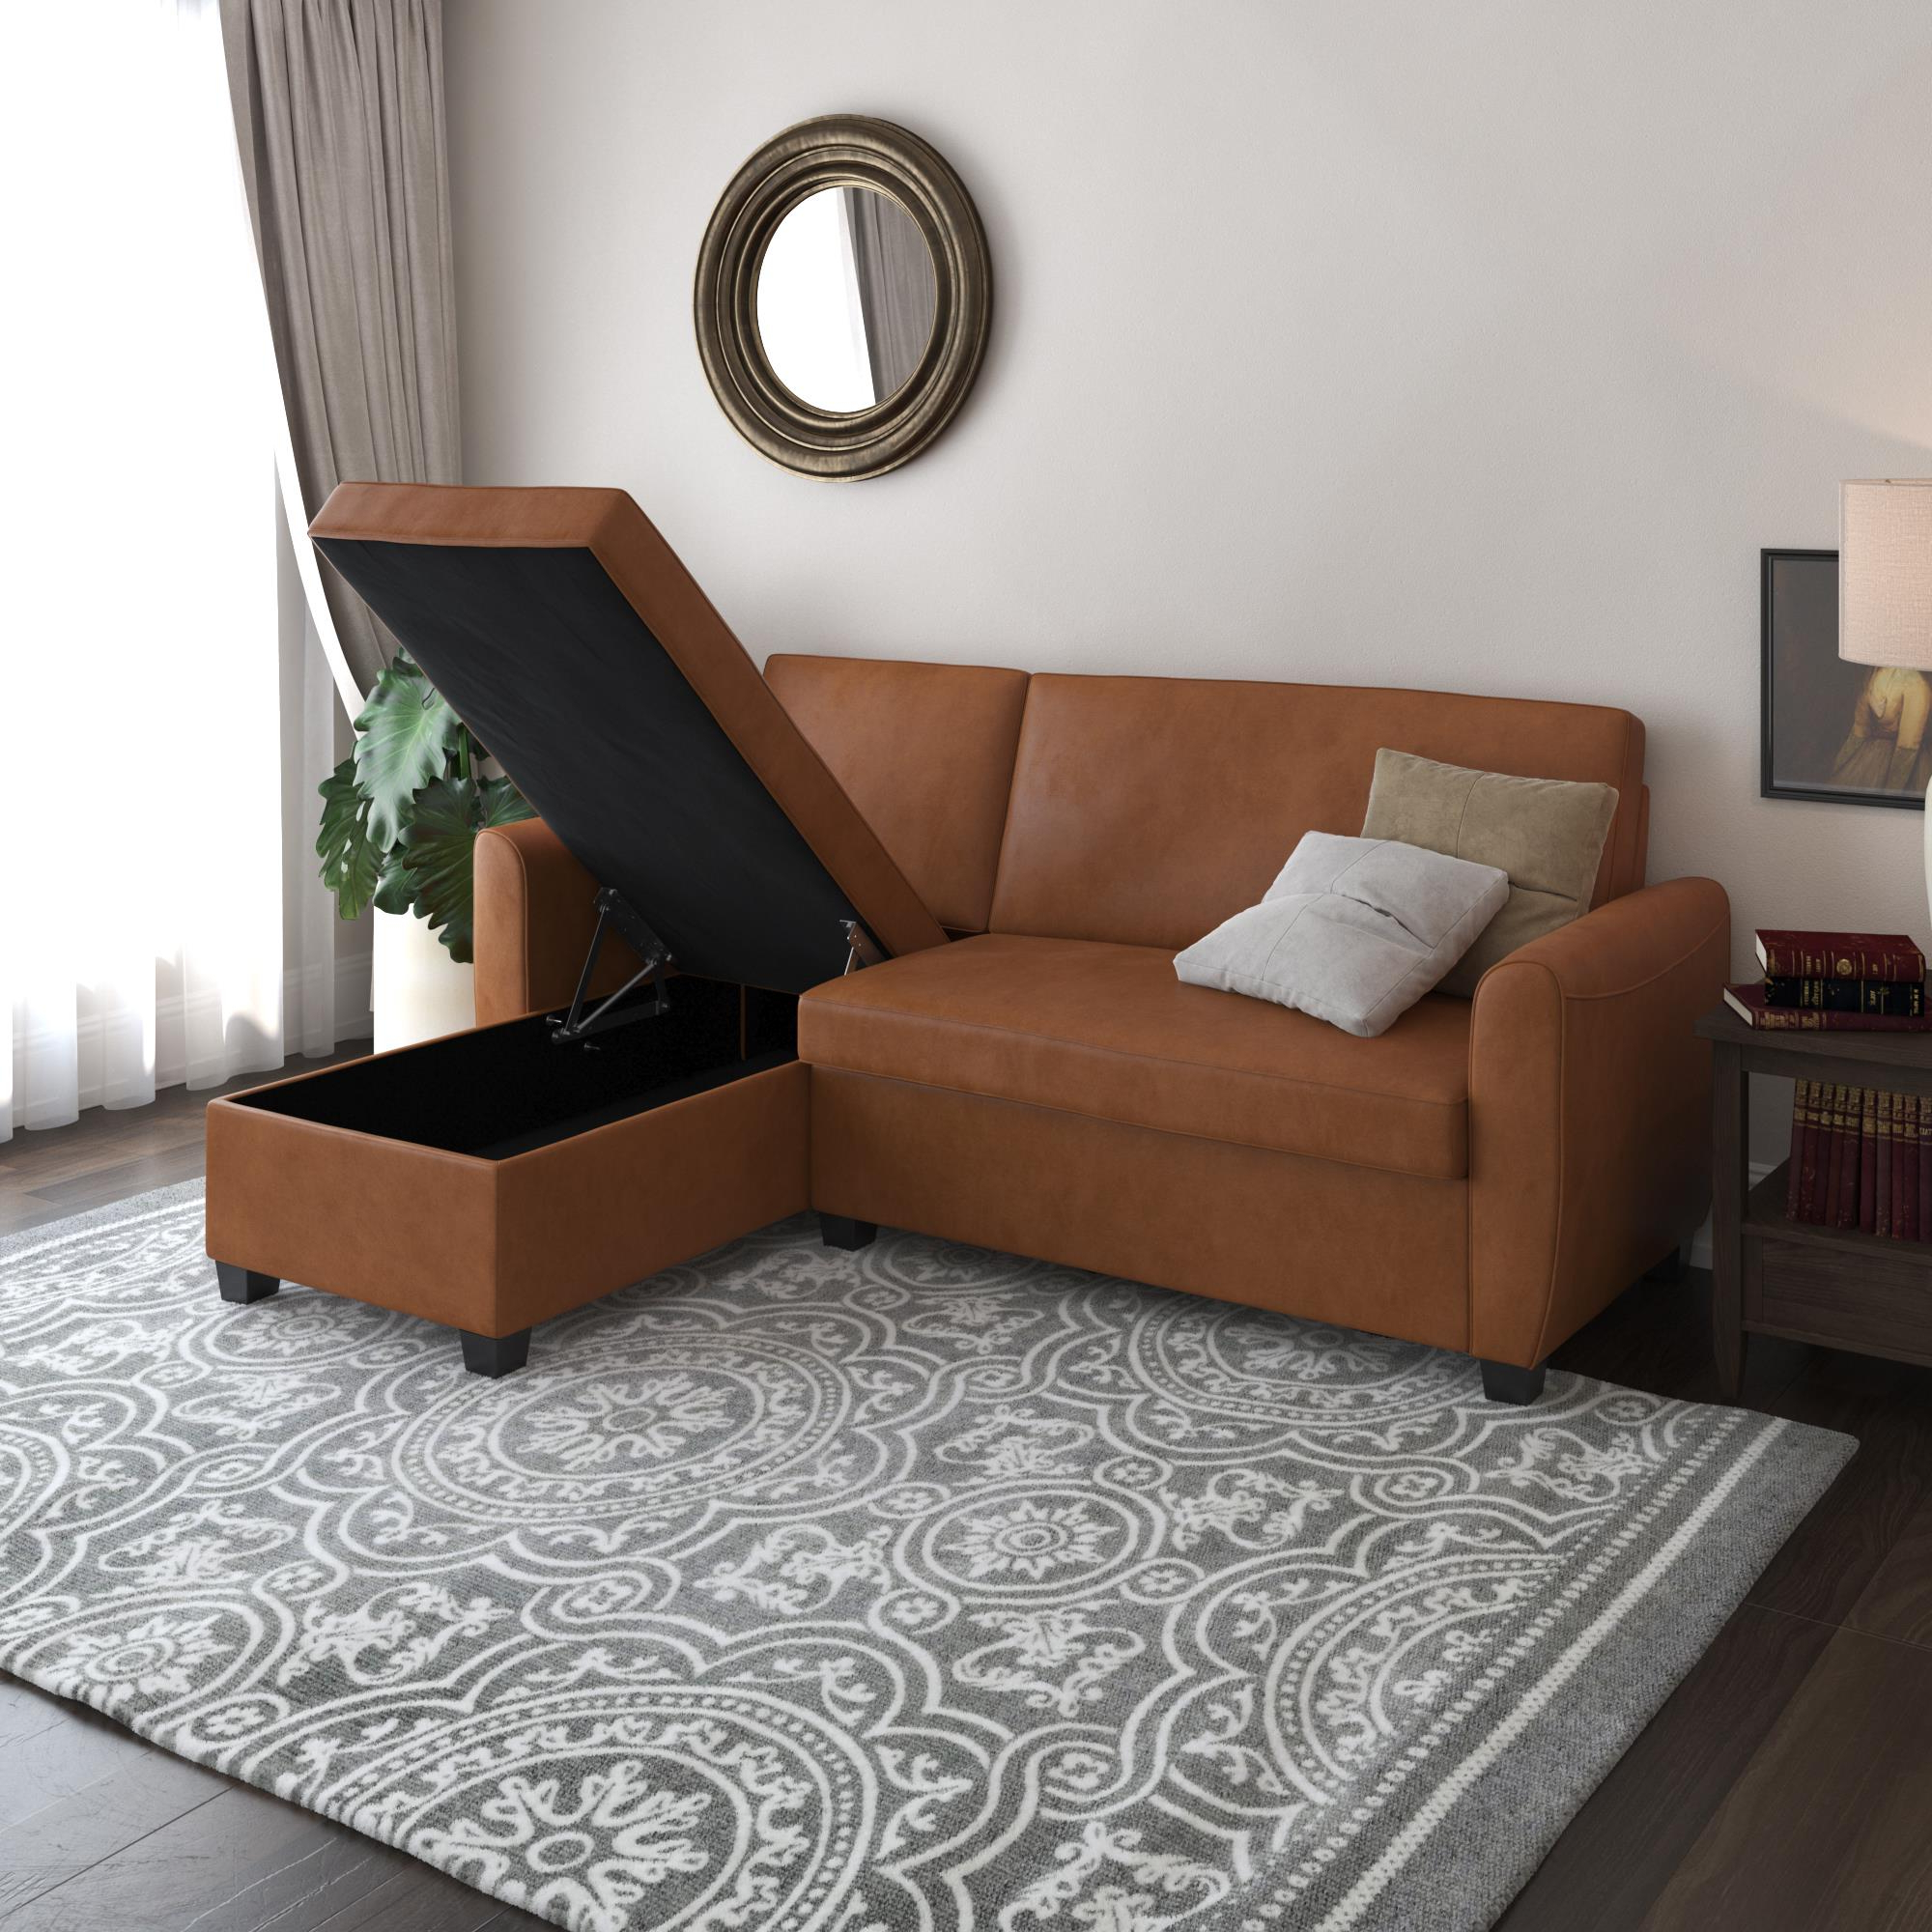 Most Current Liberty Sectional Futon Sofas With Storage For Dhp Noah Sectional Sofa Bed With Storage, Twin, Camel Faux (View 11 of 20)